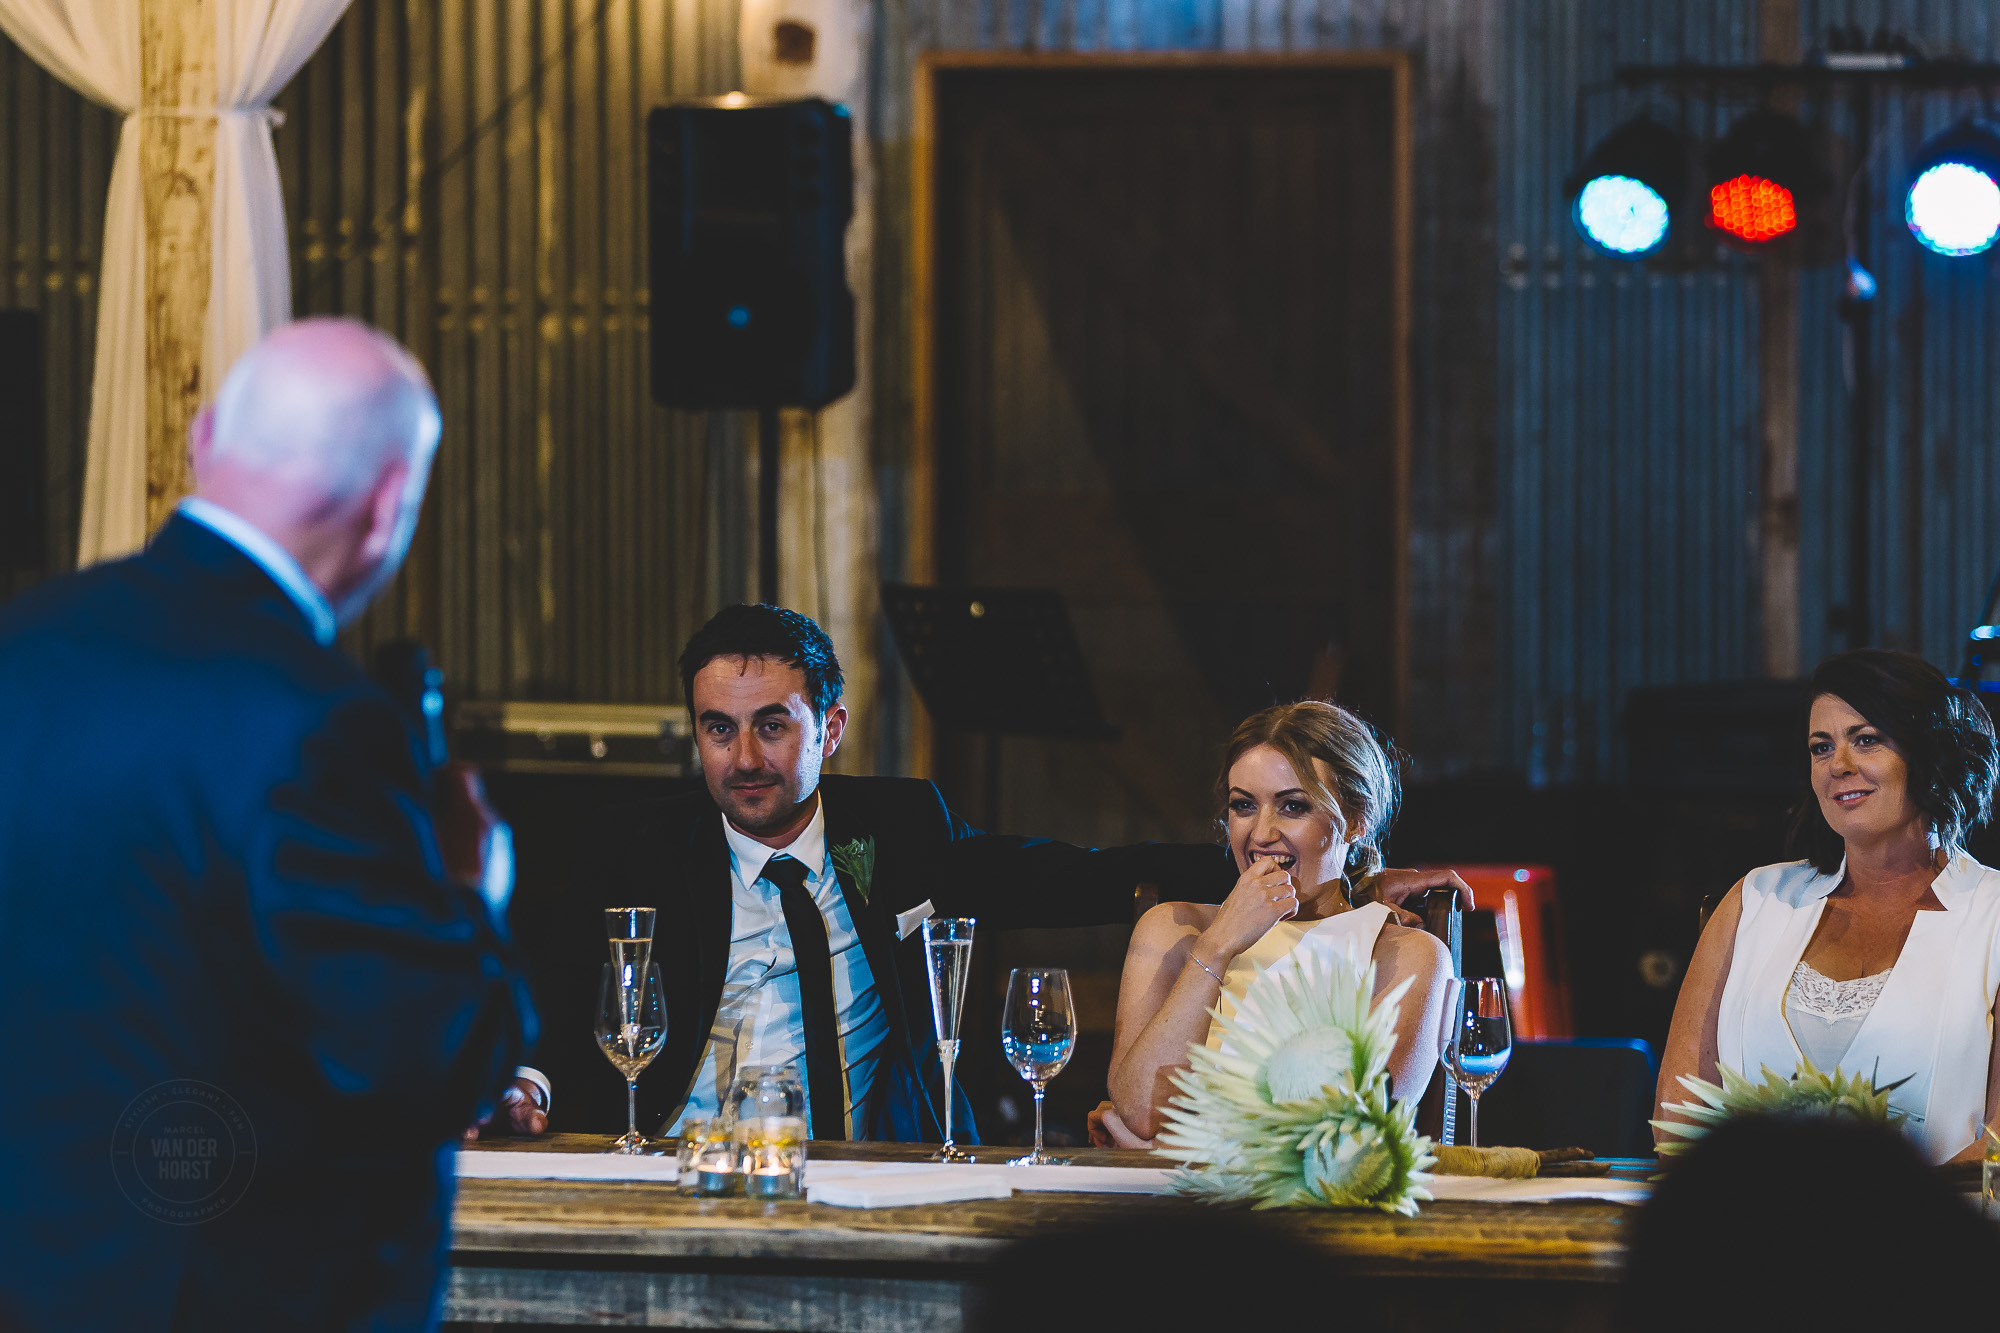 Rutherglen-Wedding-Photographer-1061.jpg